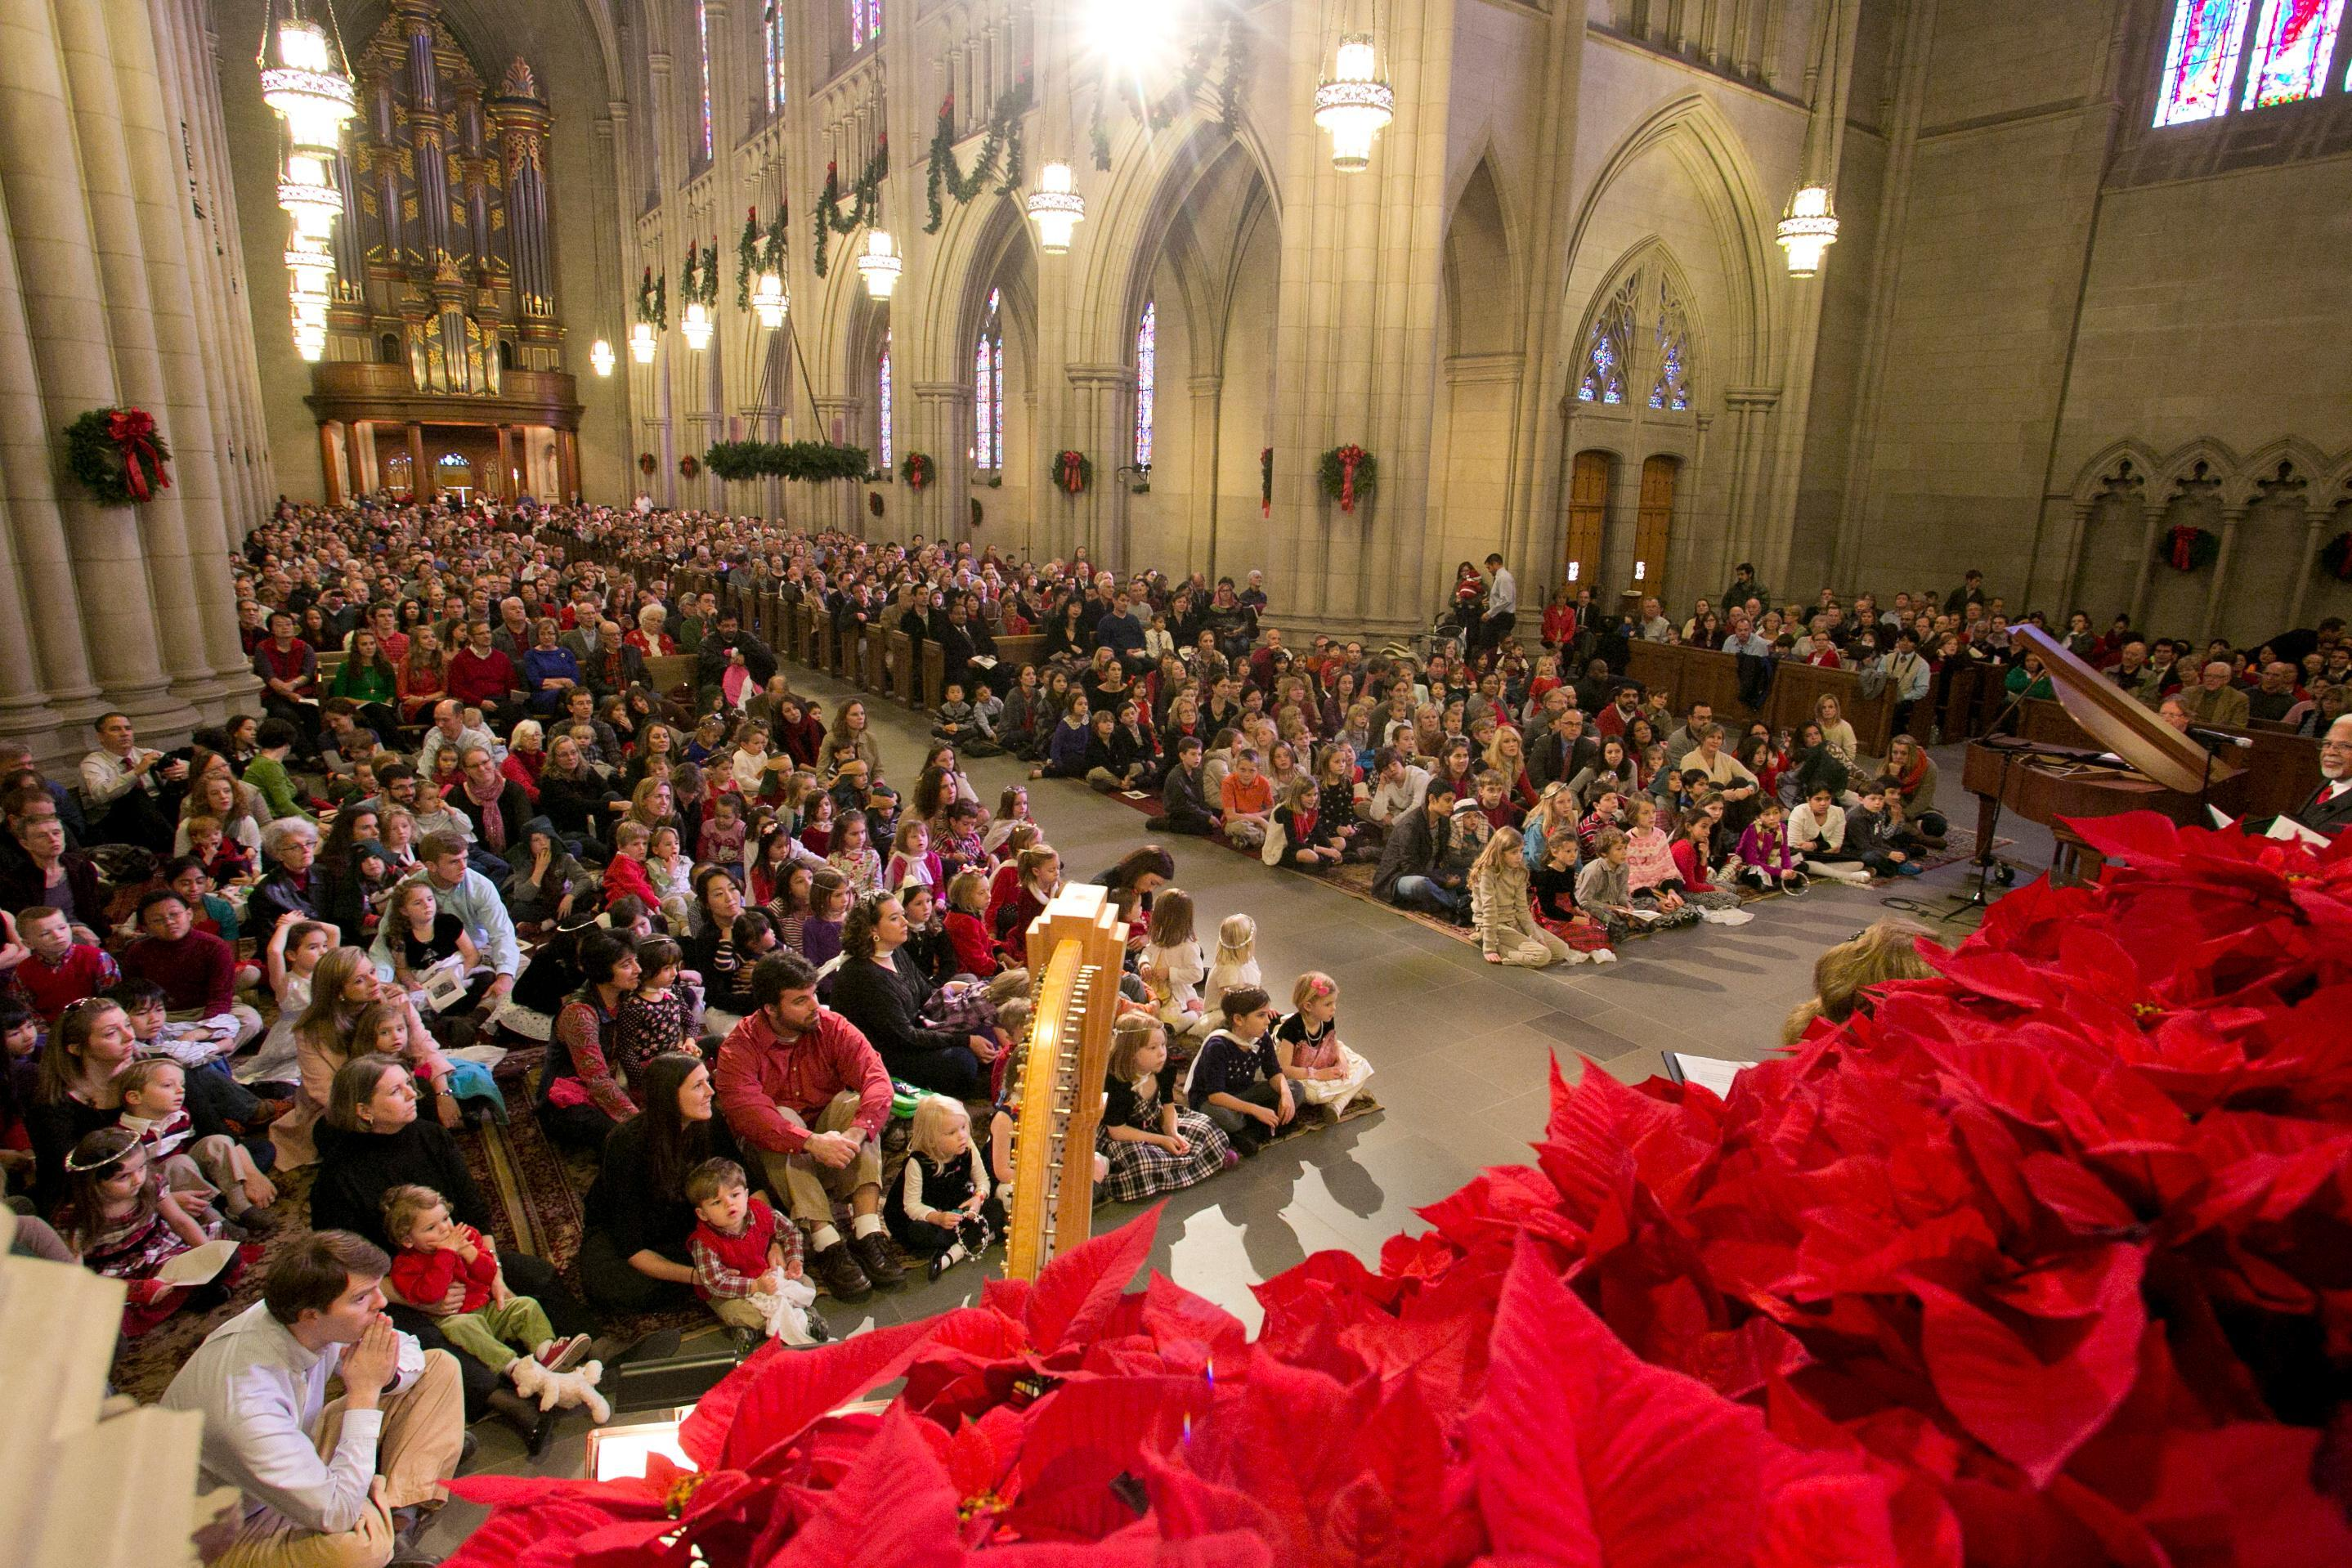 Duke Chapel Christmas Eve 2020 Christmas Eve Children's Service | Duke University Chapel